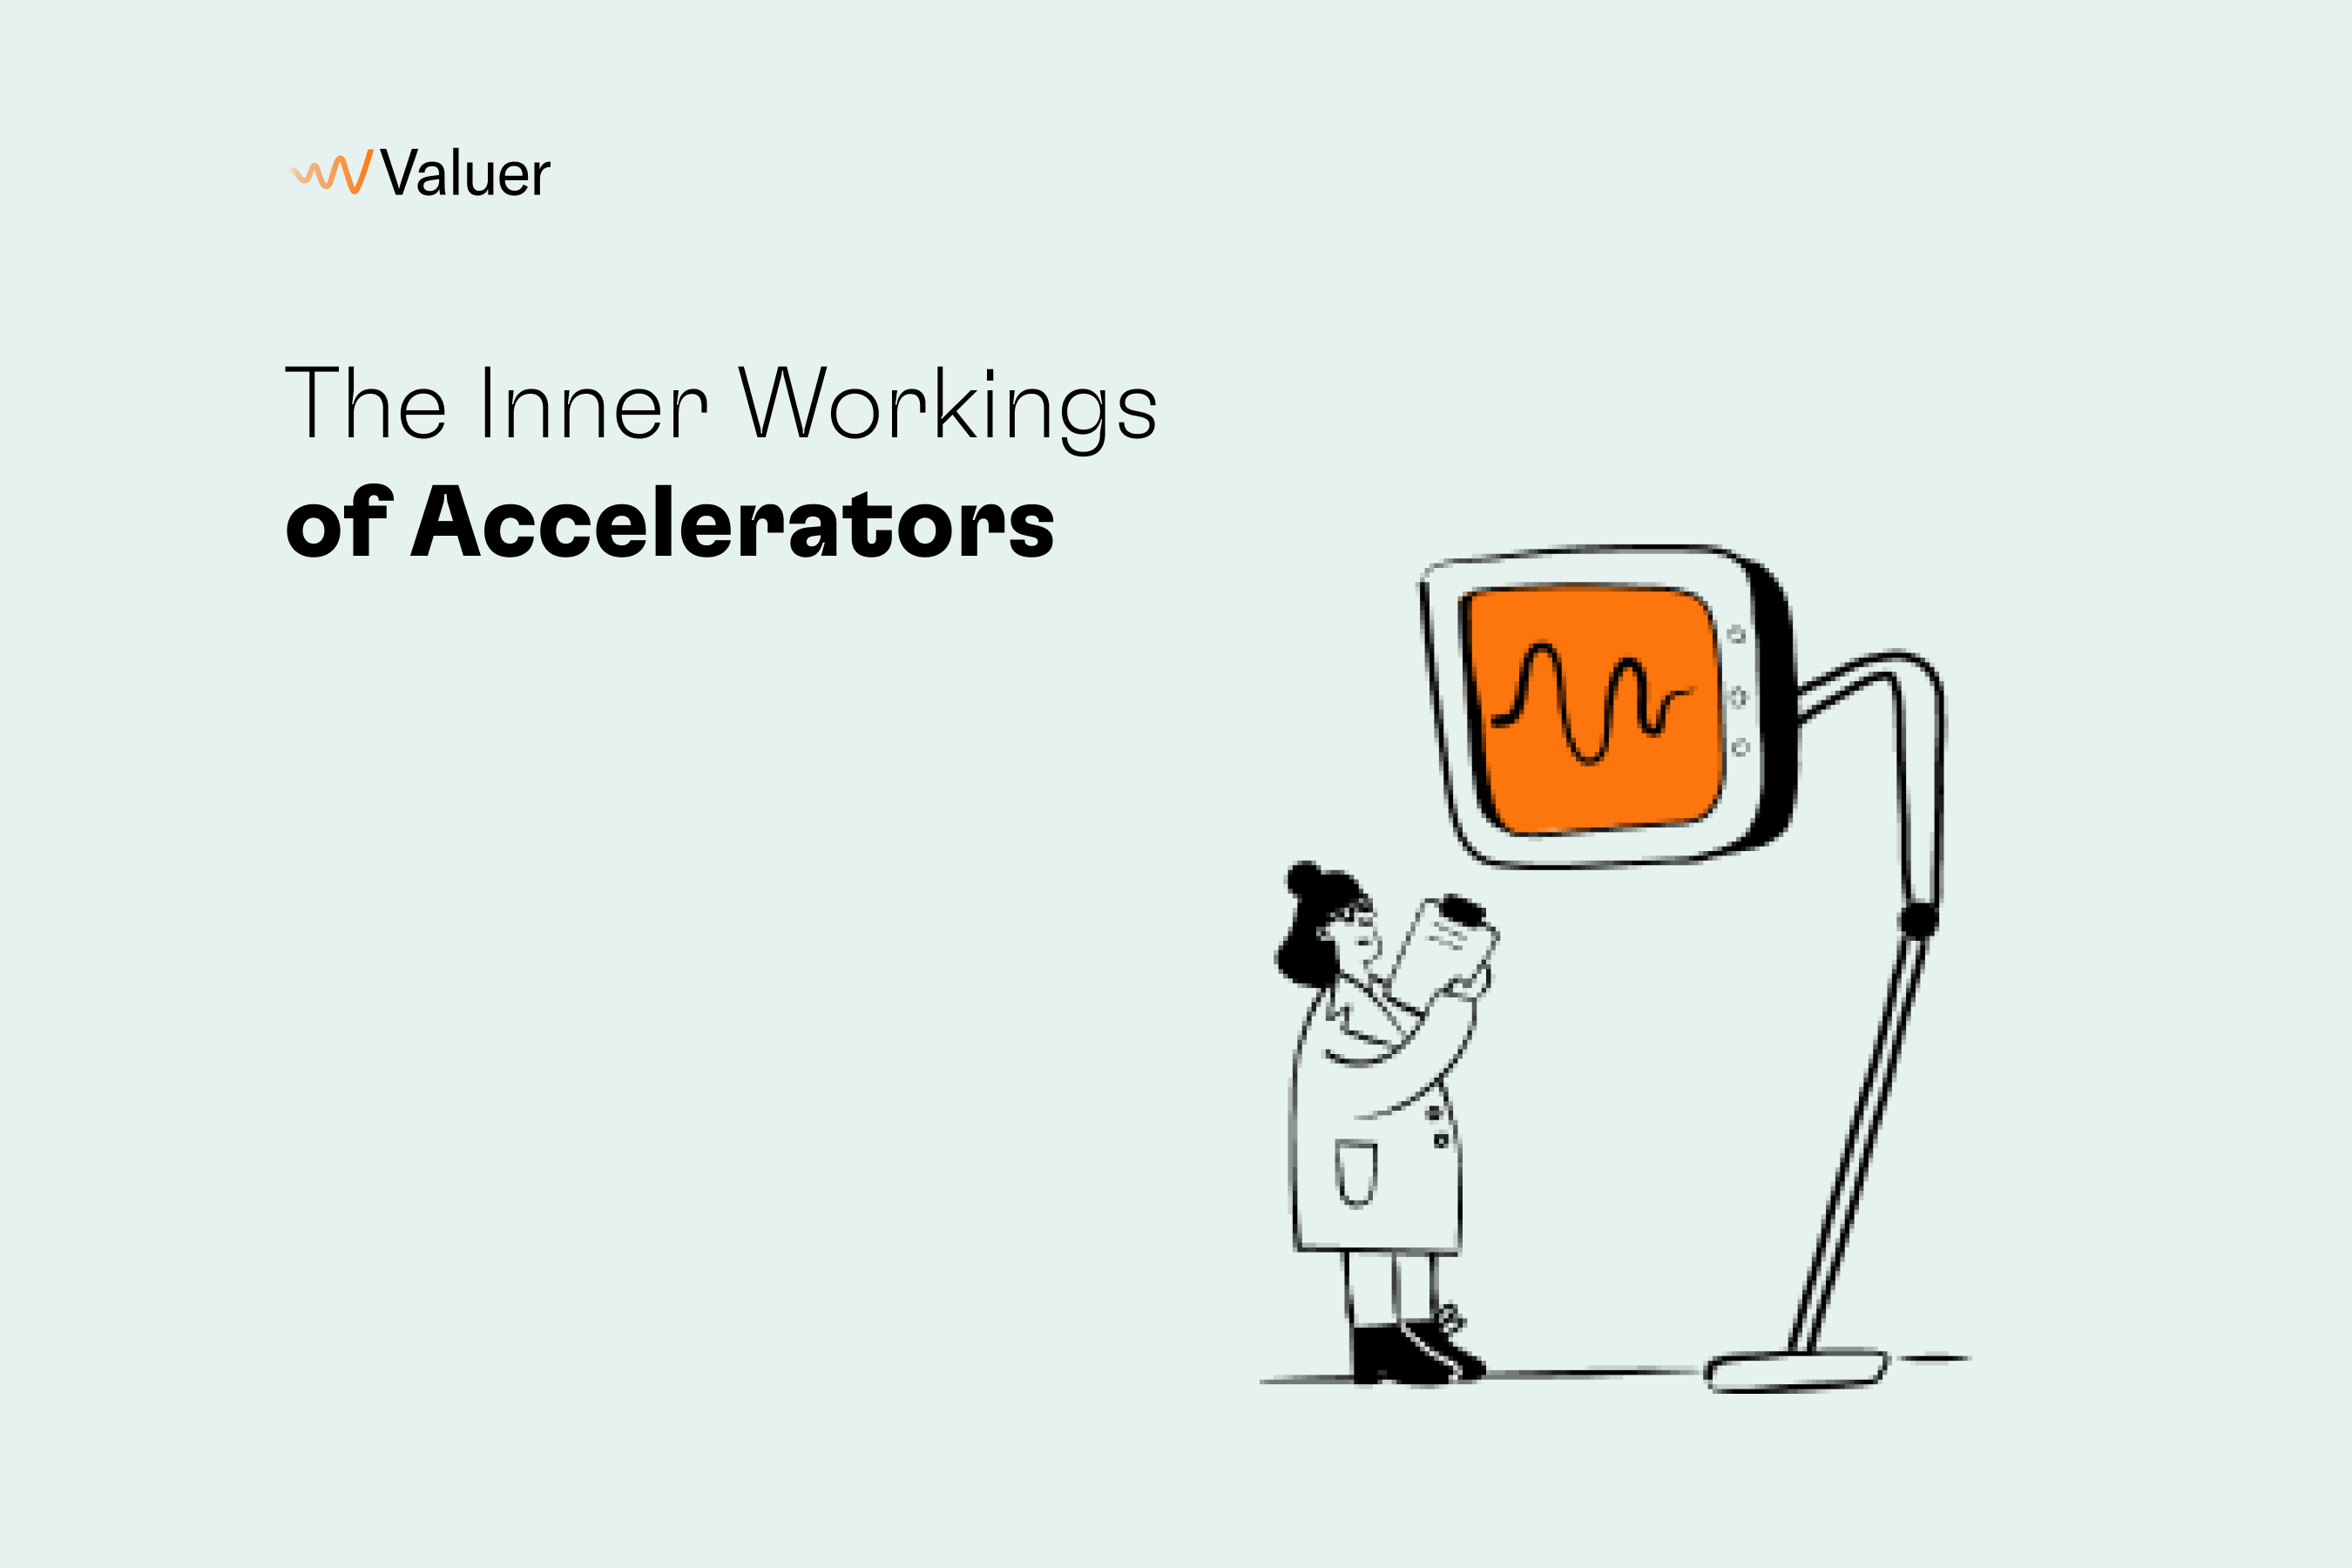 Image A_ Title_ The Inner Workings of Accelerators